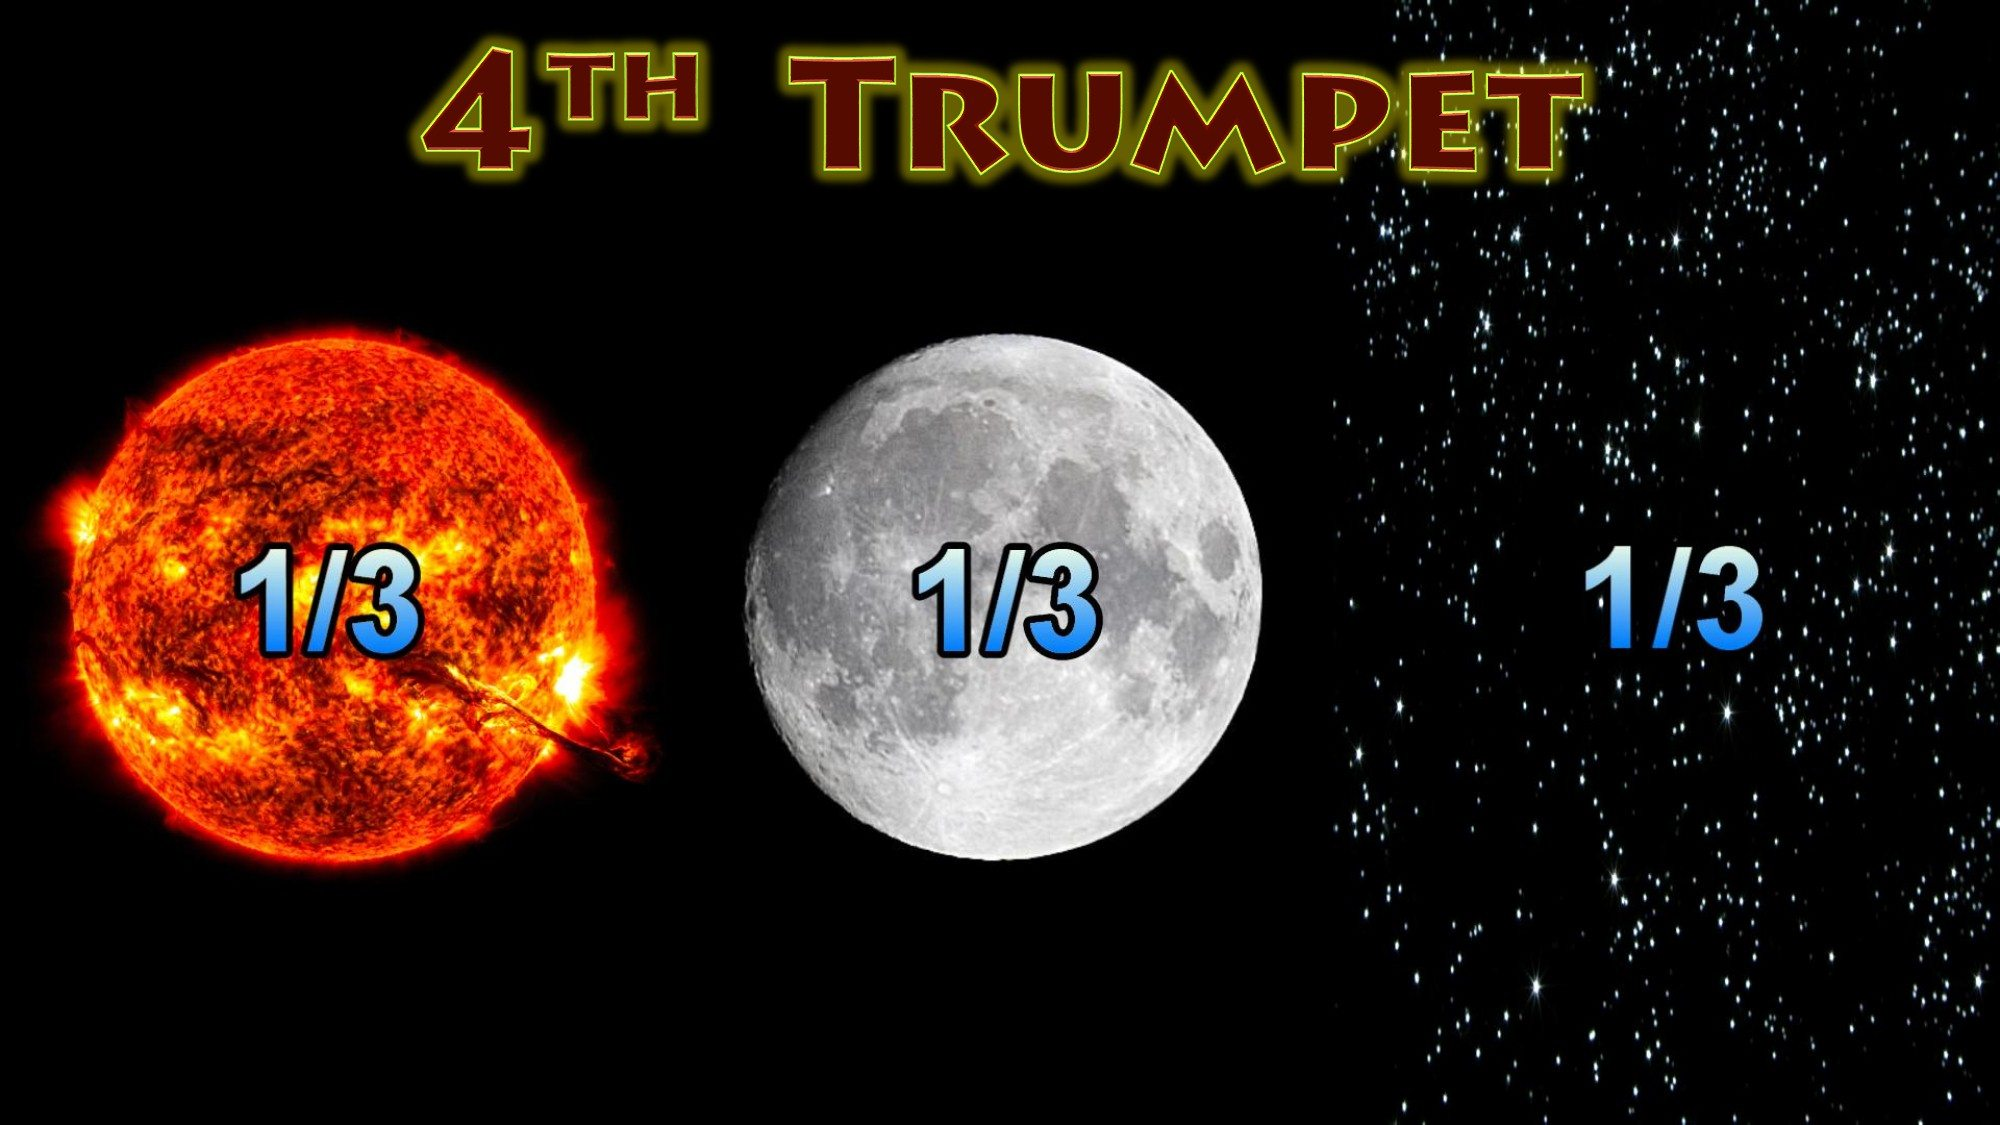 Fourth Trumpet,Sun,Moon,Stars Darkened,Third Dark,sun light blocked,Seven Trumpets,Book of Revelation,Revelation Chapter 8,Apocalypse